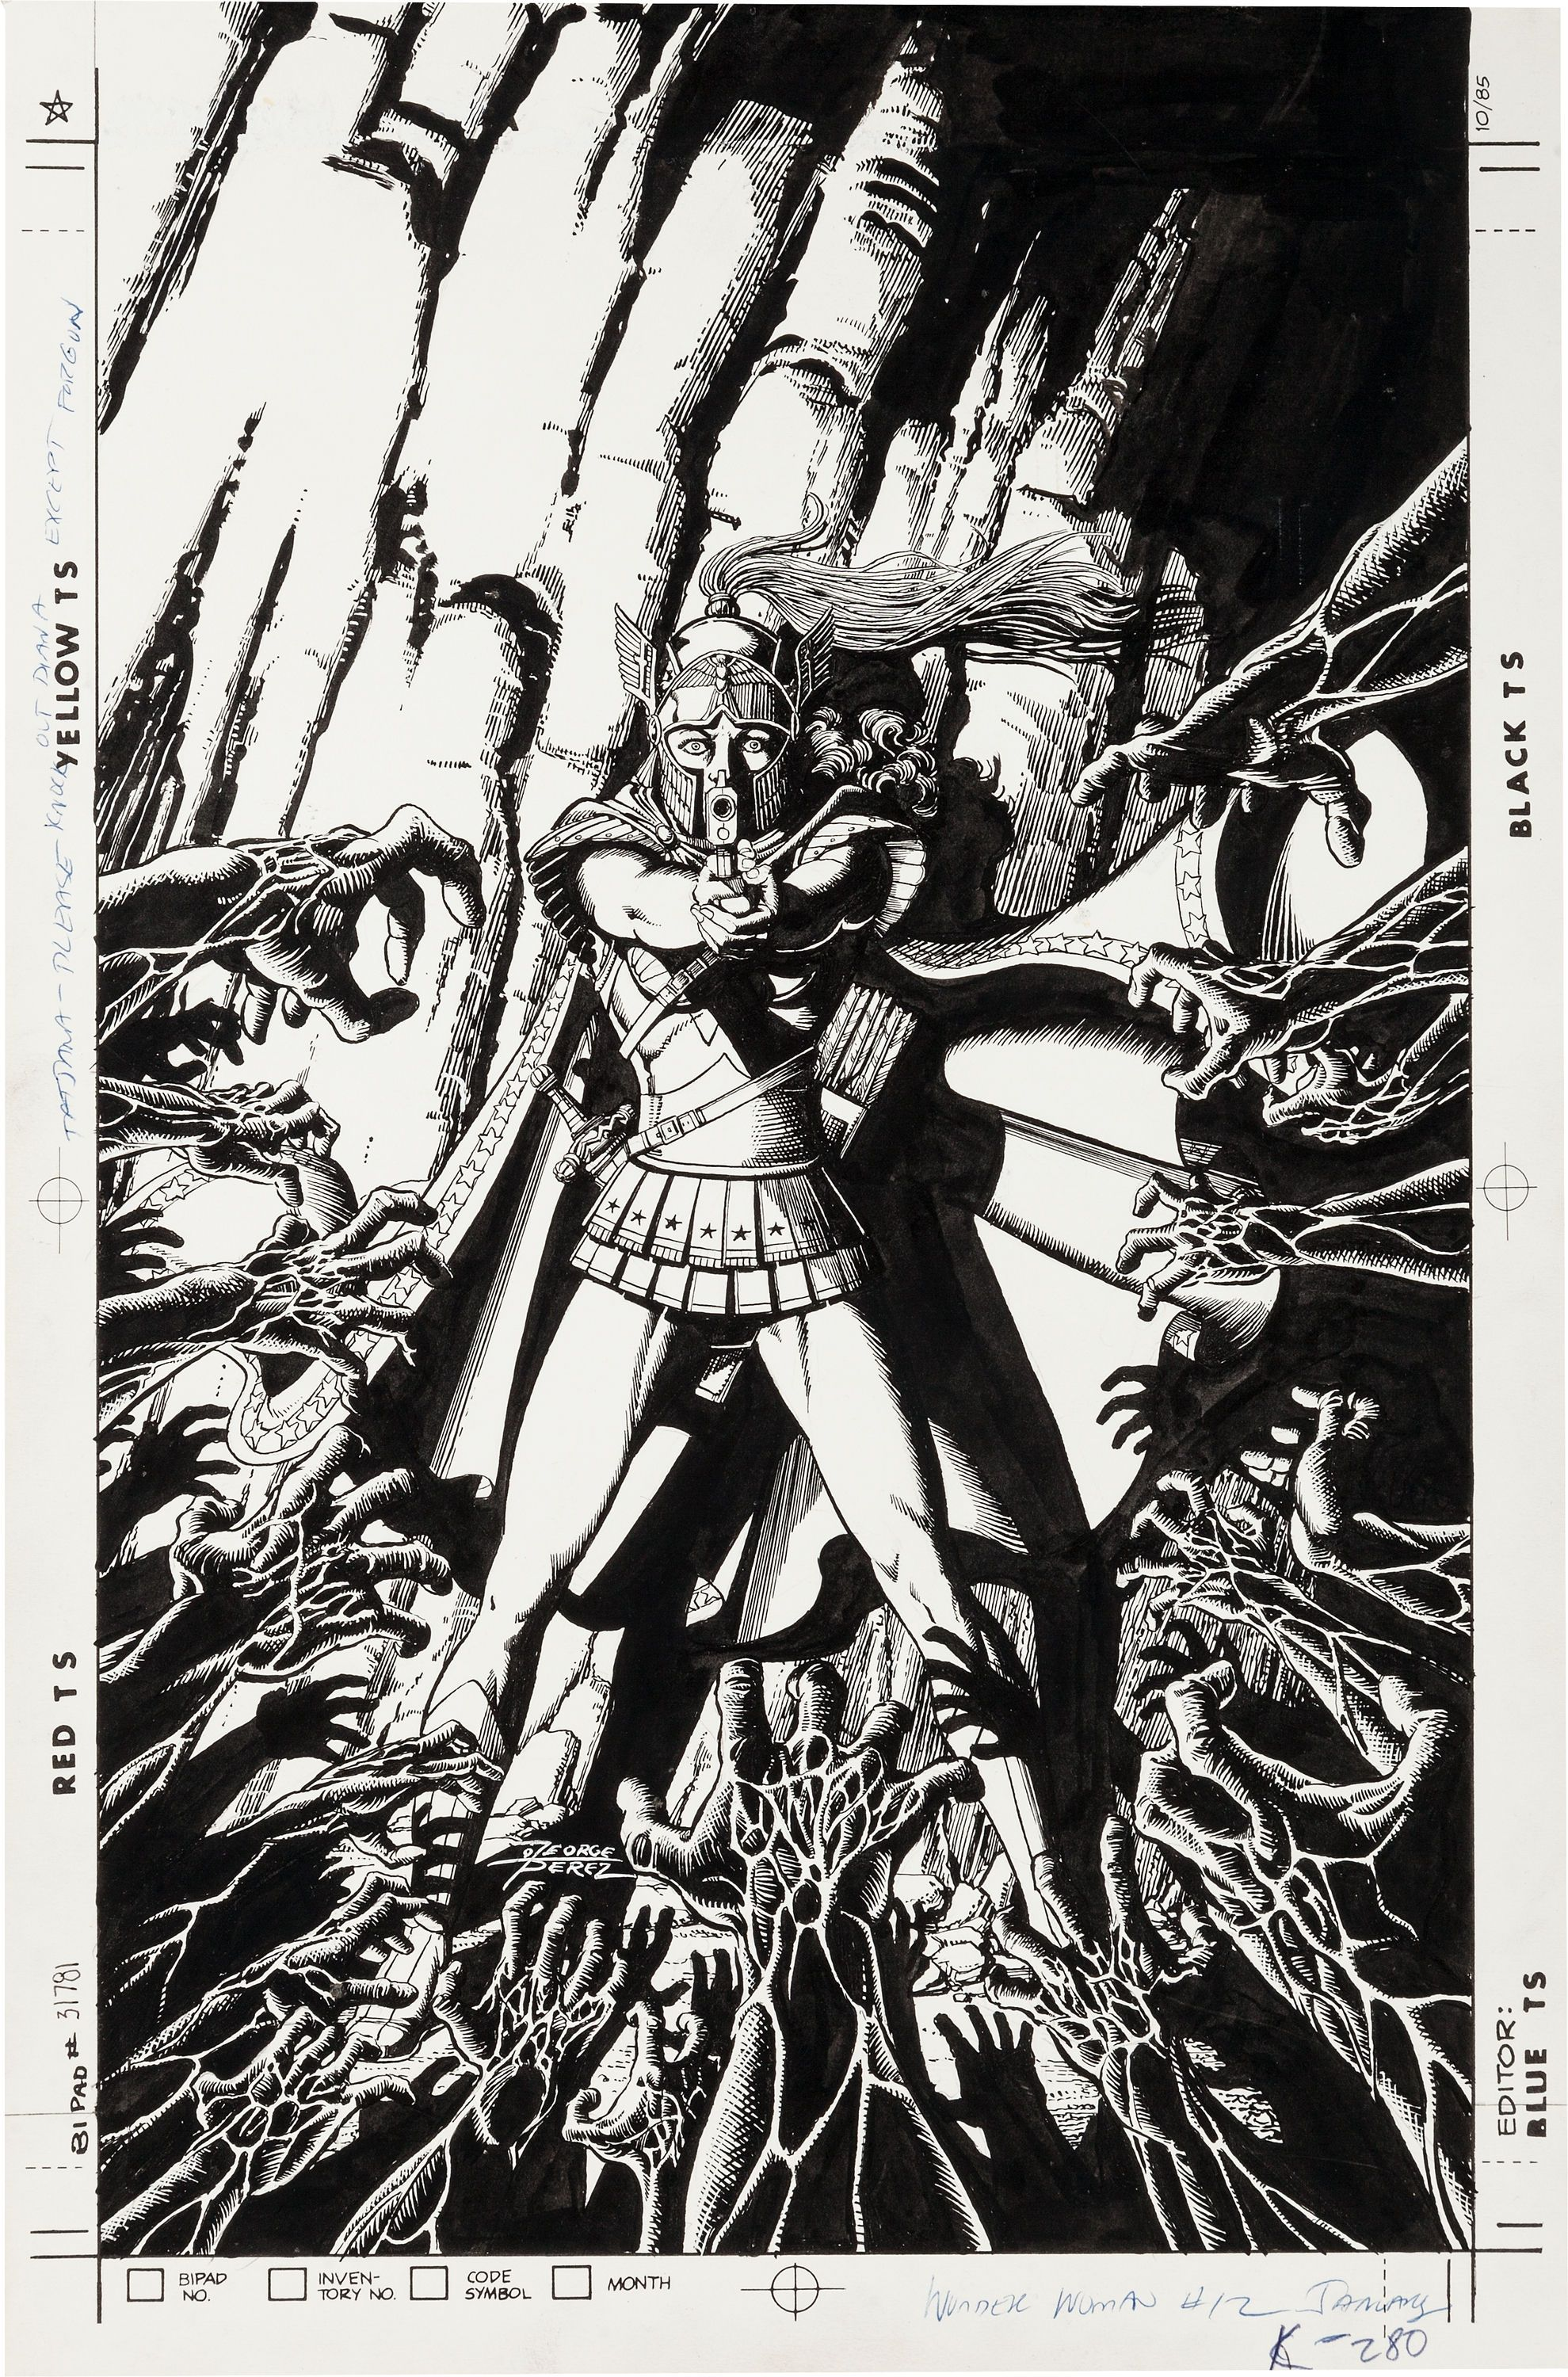 Original cover art by George Perez from Wonder Woman #12, 1988